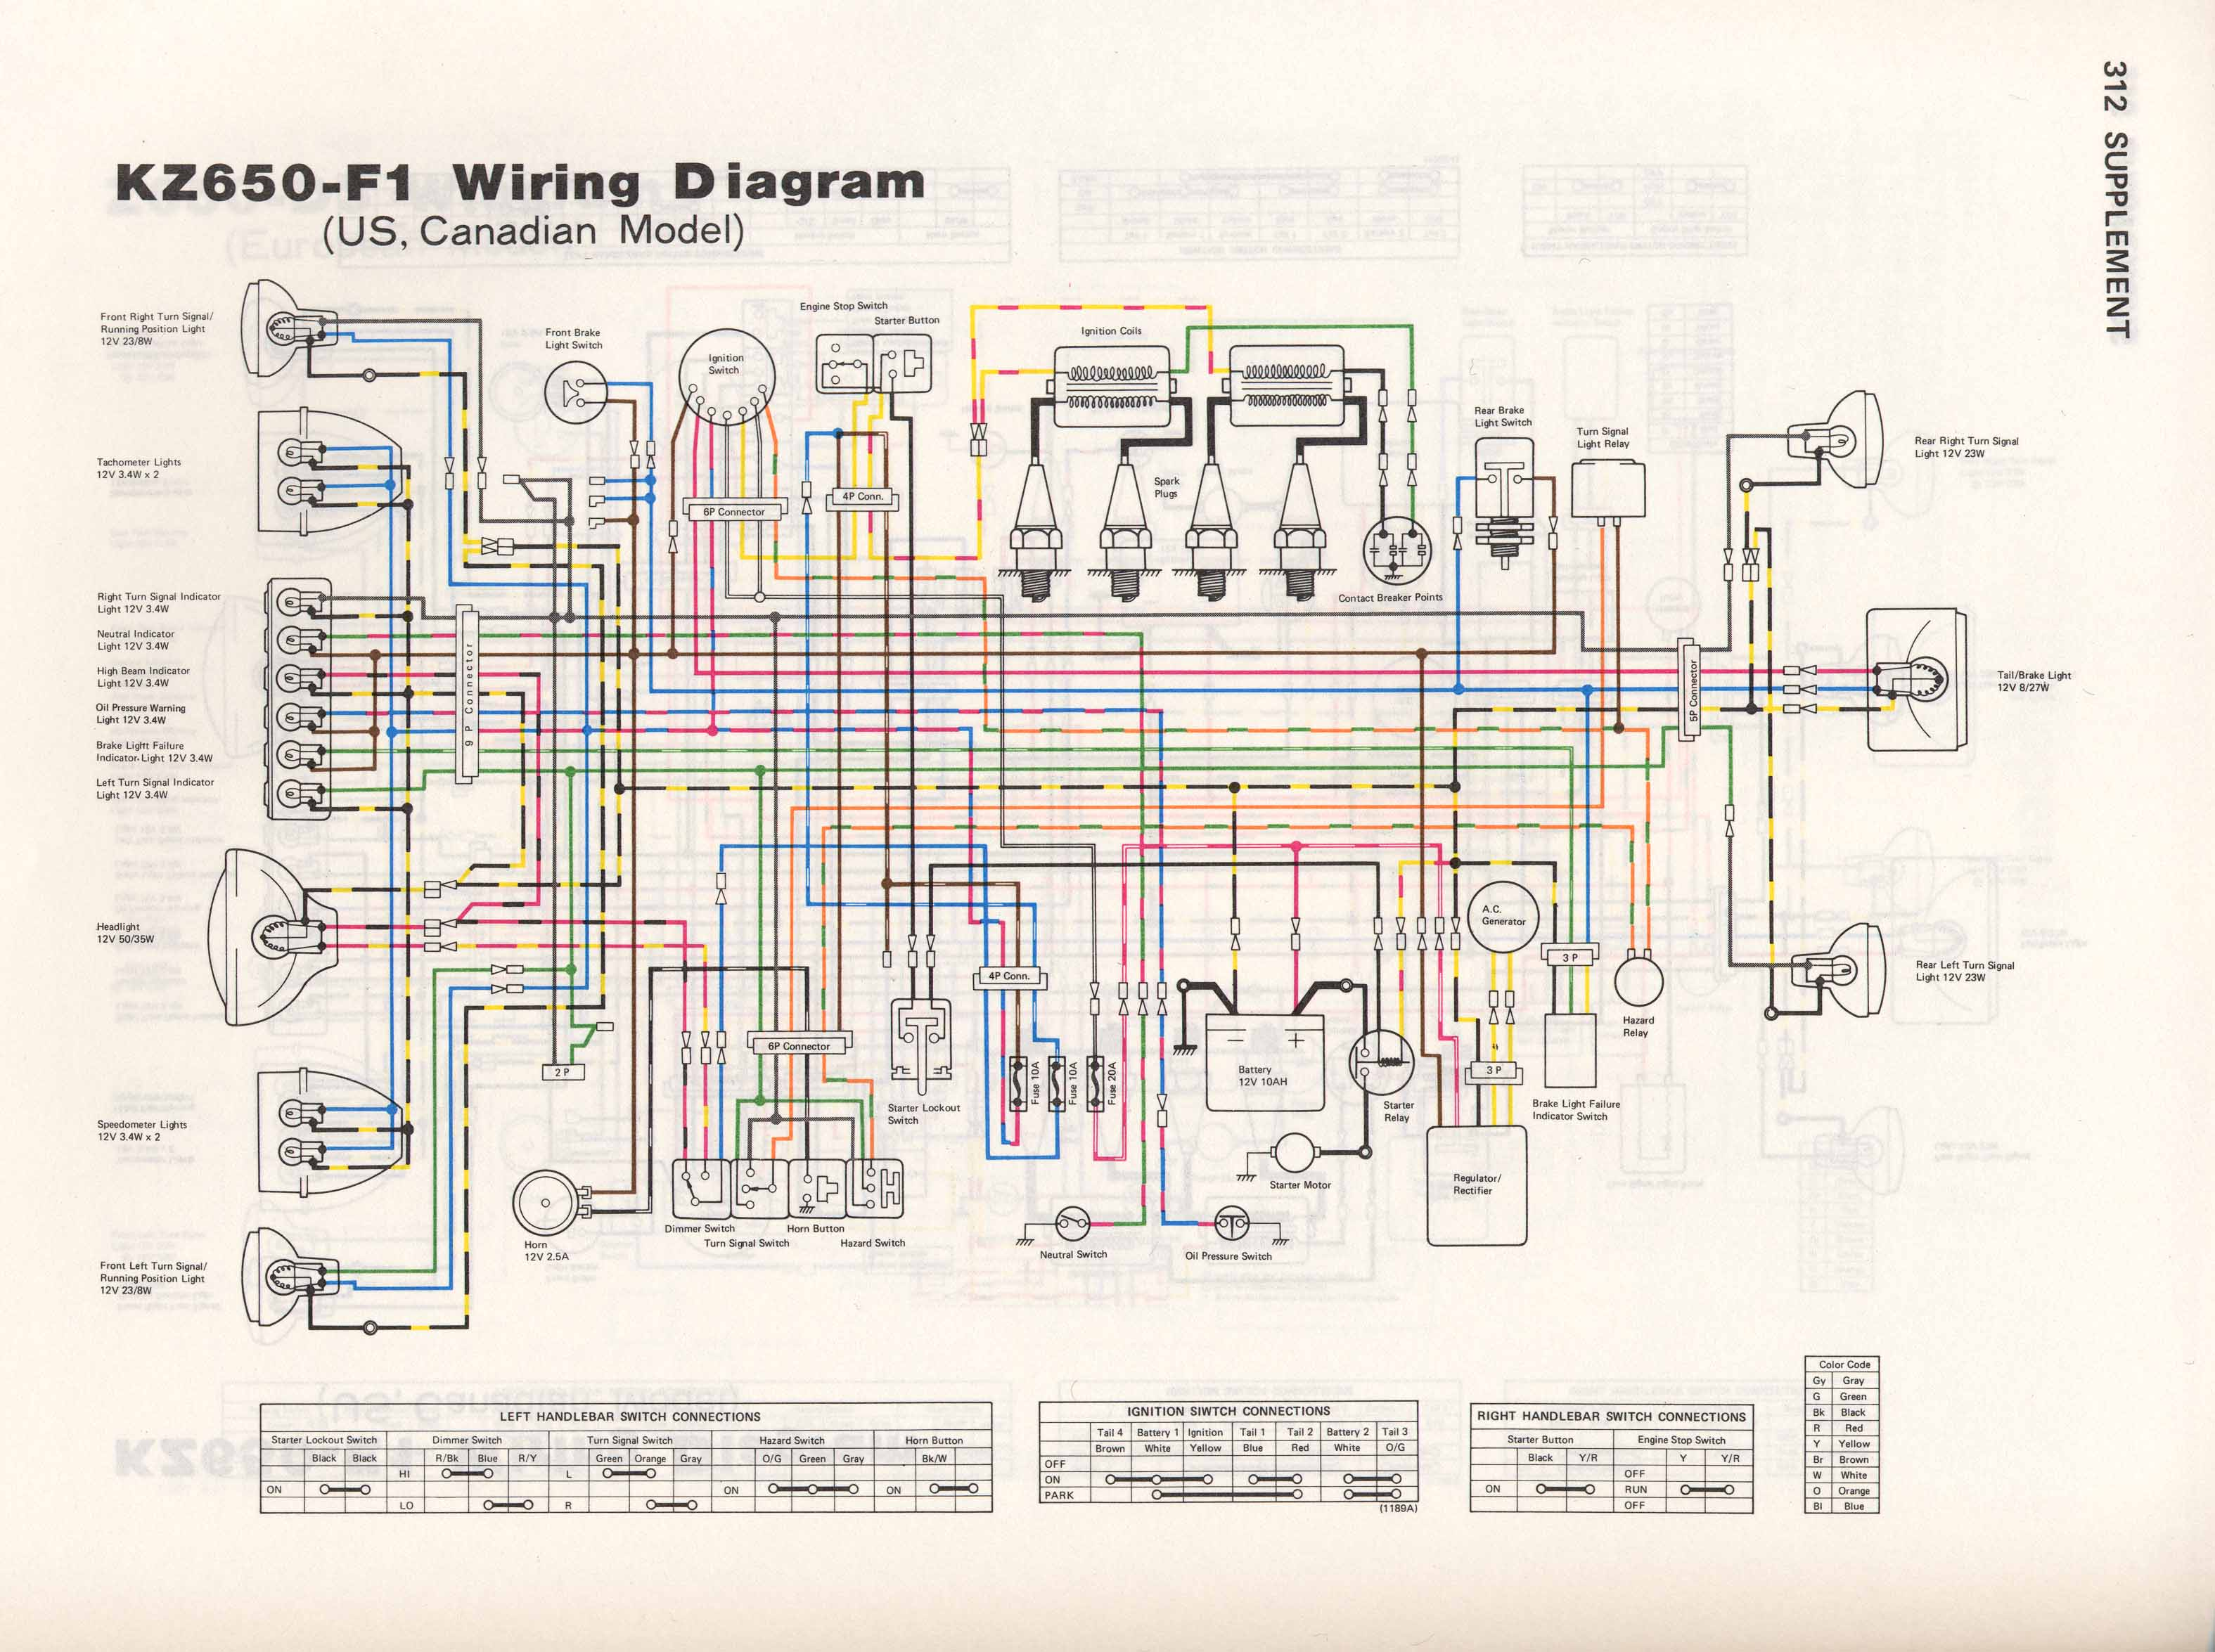 KZ650 F1 kz650 info wiring diagrams 1980 kz650 wiring diagram at alyssarenee.co